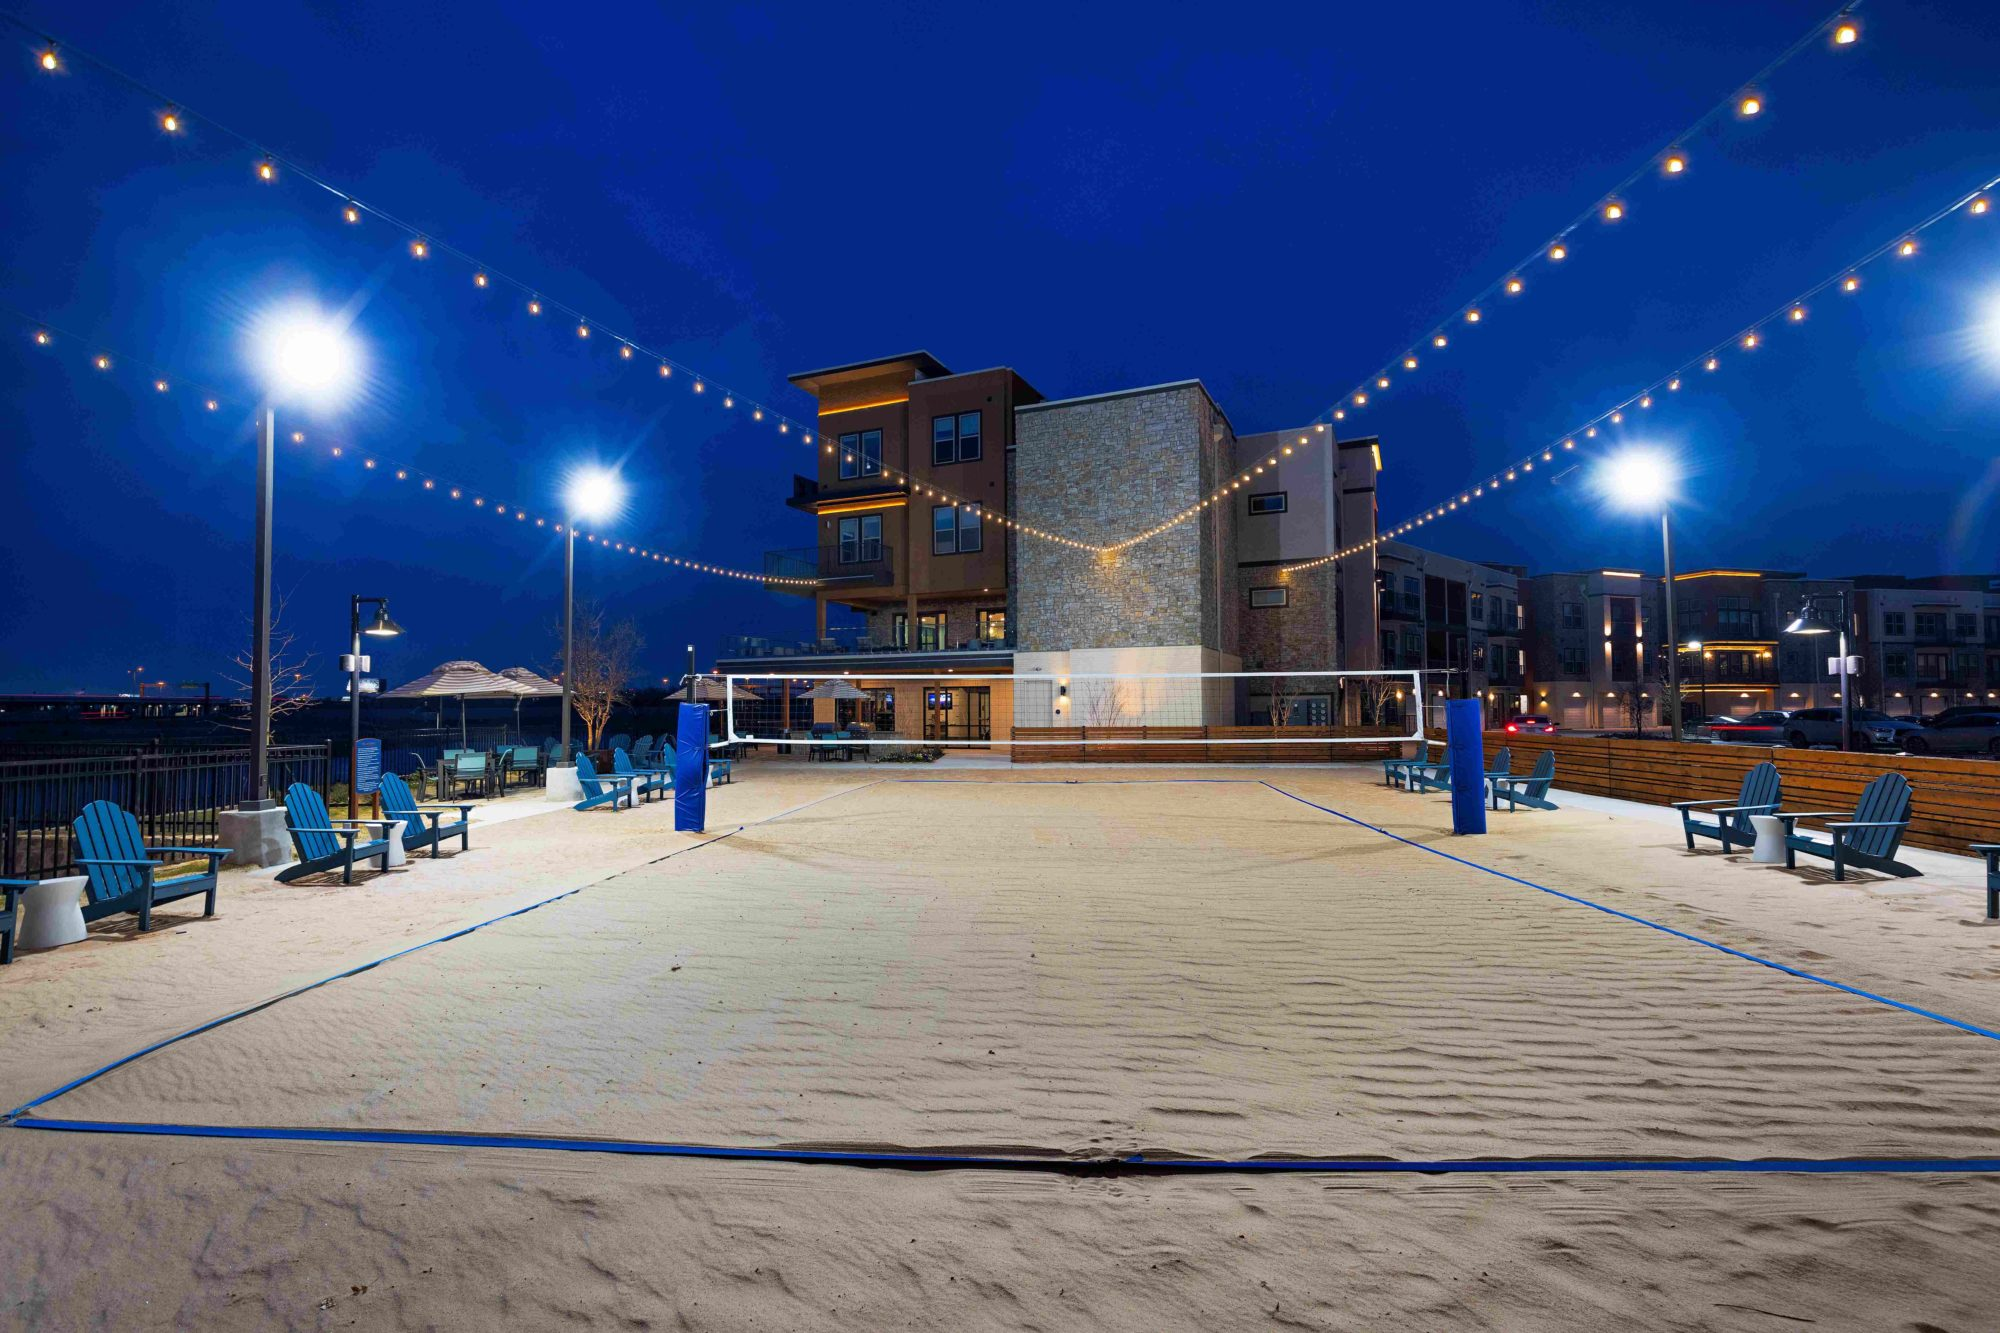 night shot of sand volleyball court with string lighting and property buildings in the background